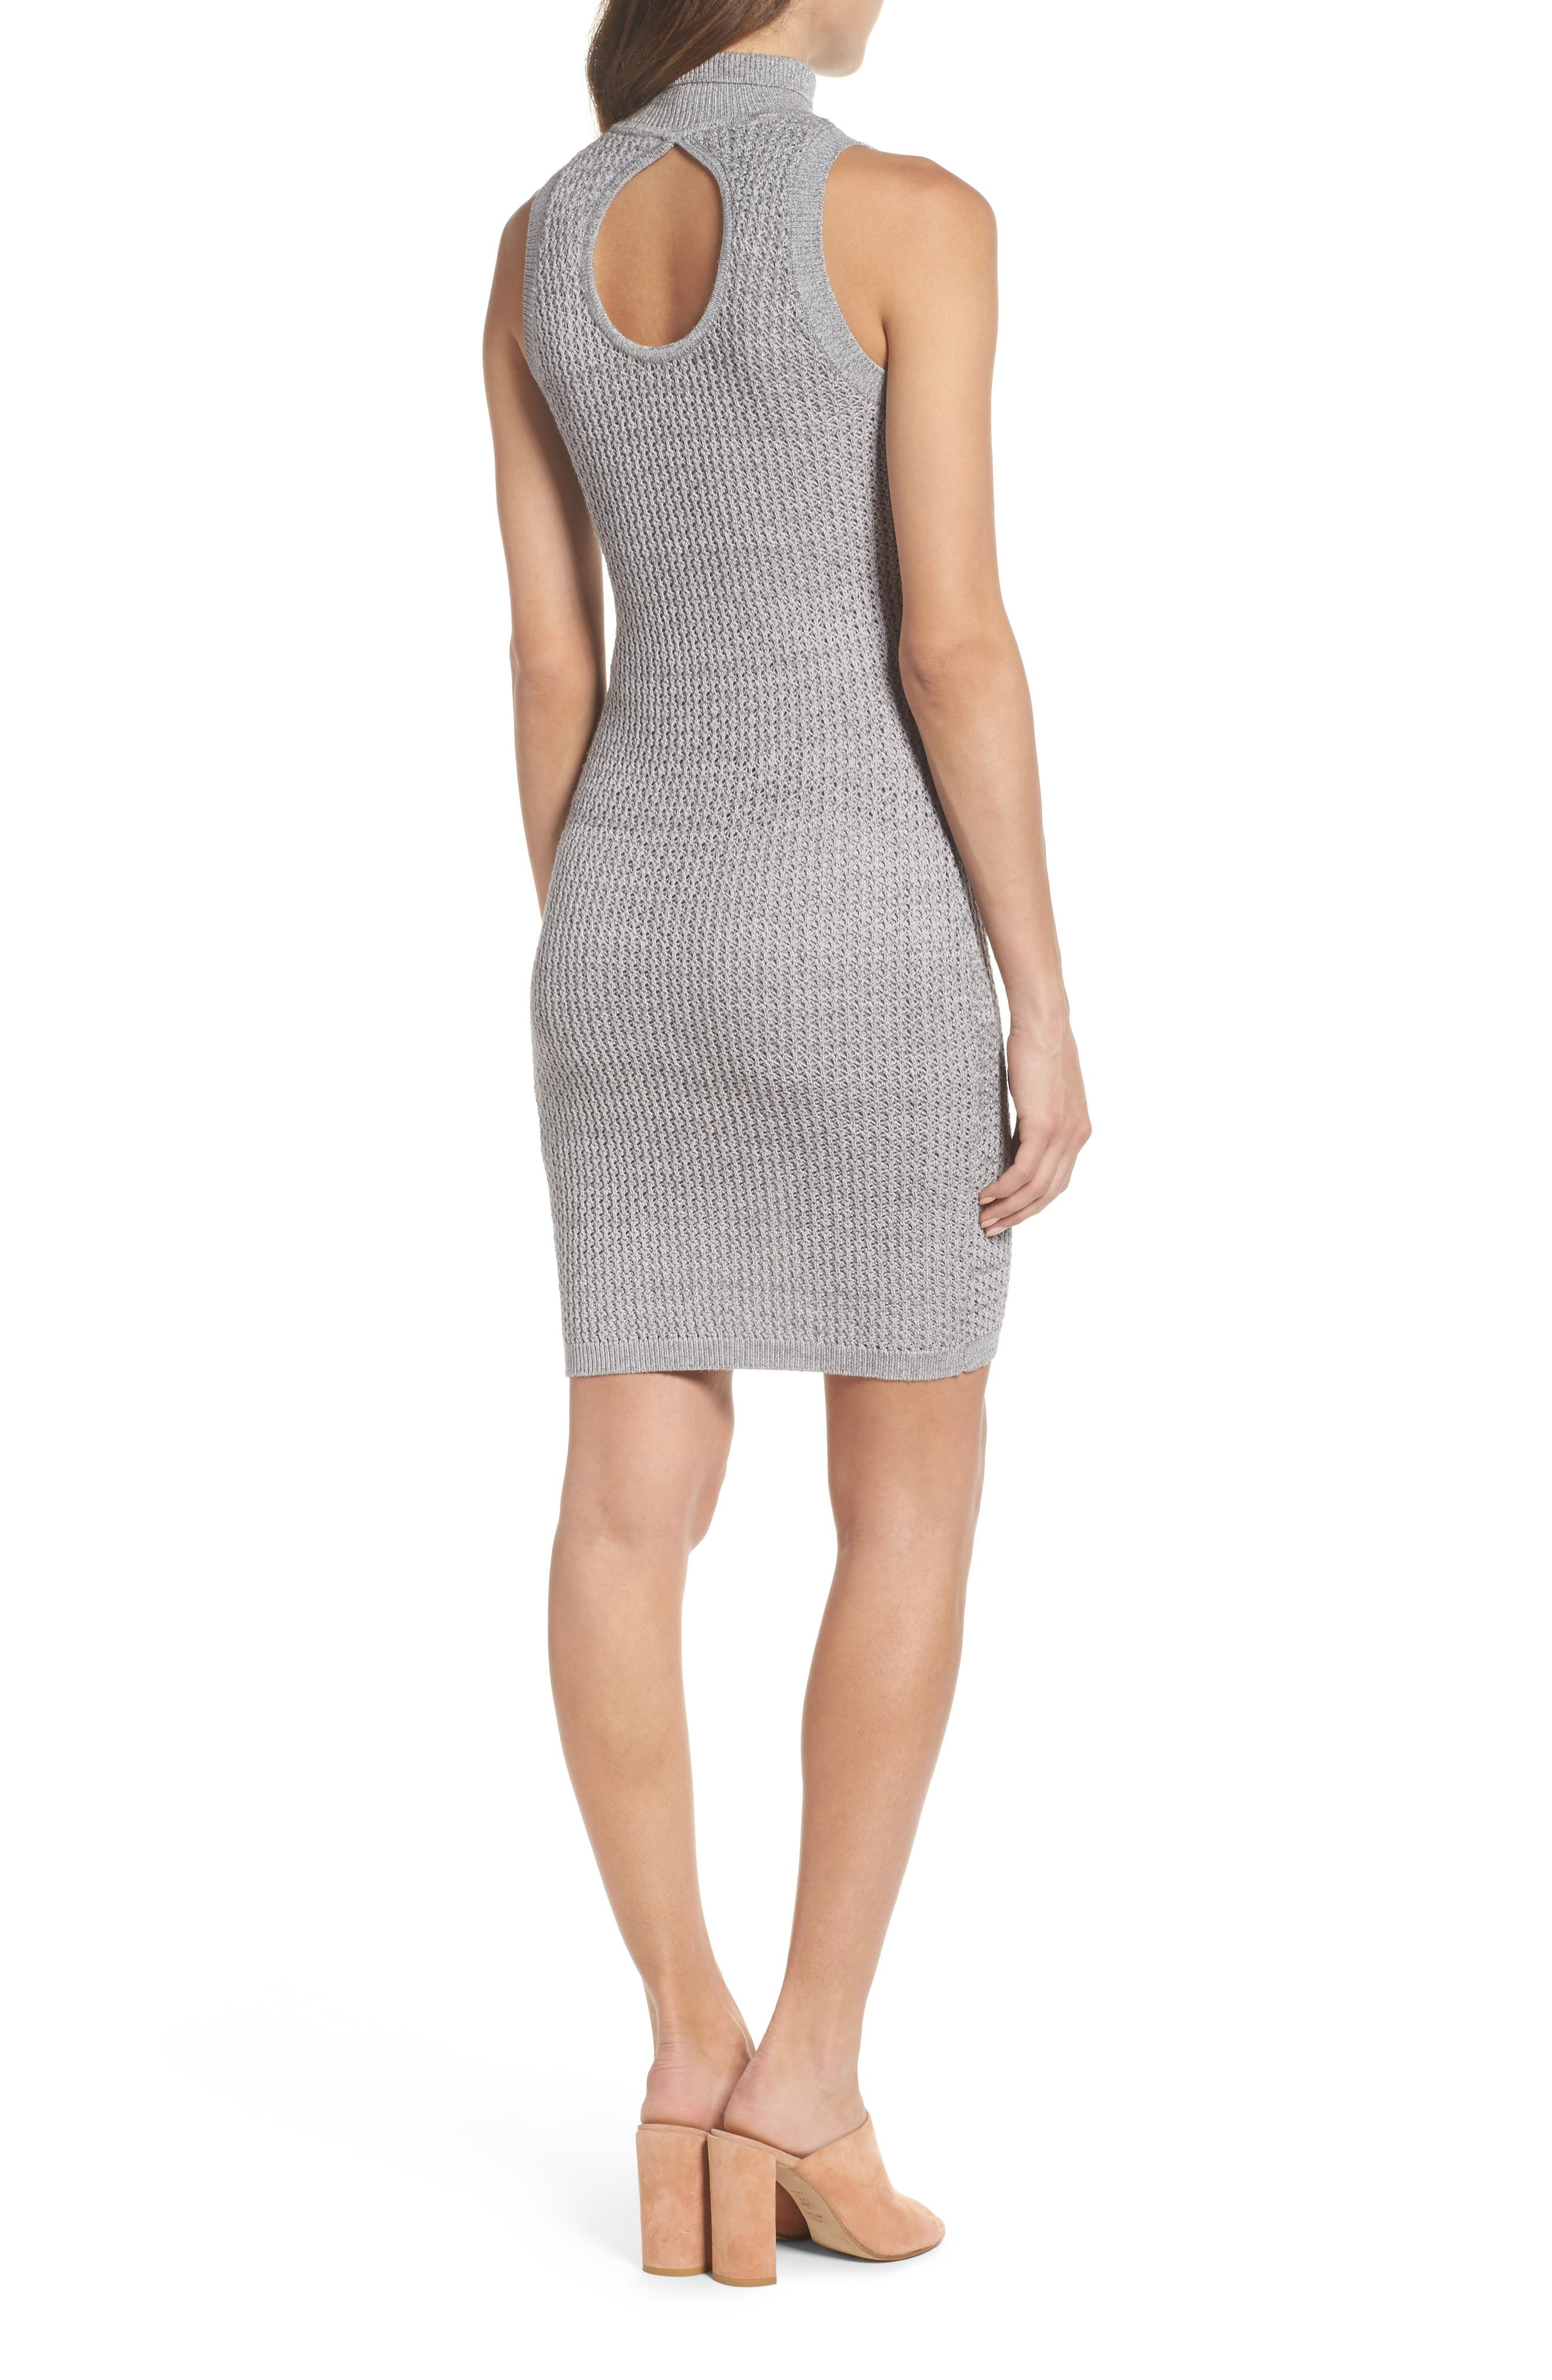 We Shall Overcome Body-Con Dress,                             Alternate thumbnail 3, color,                             Grey